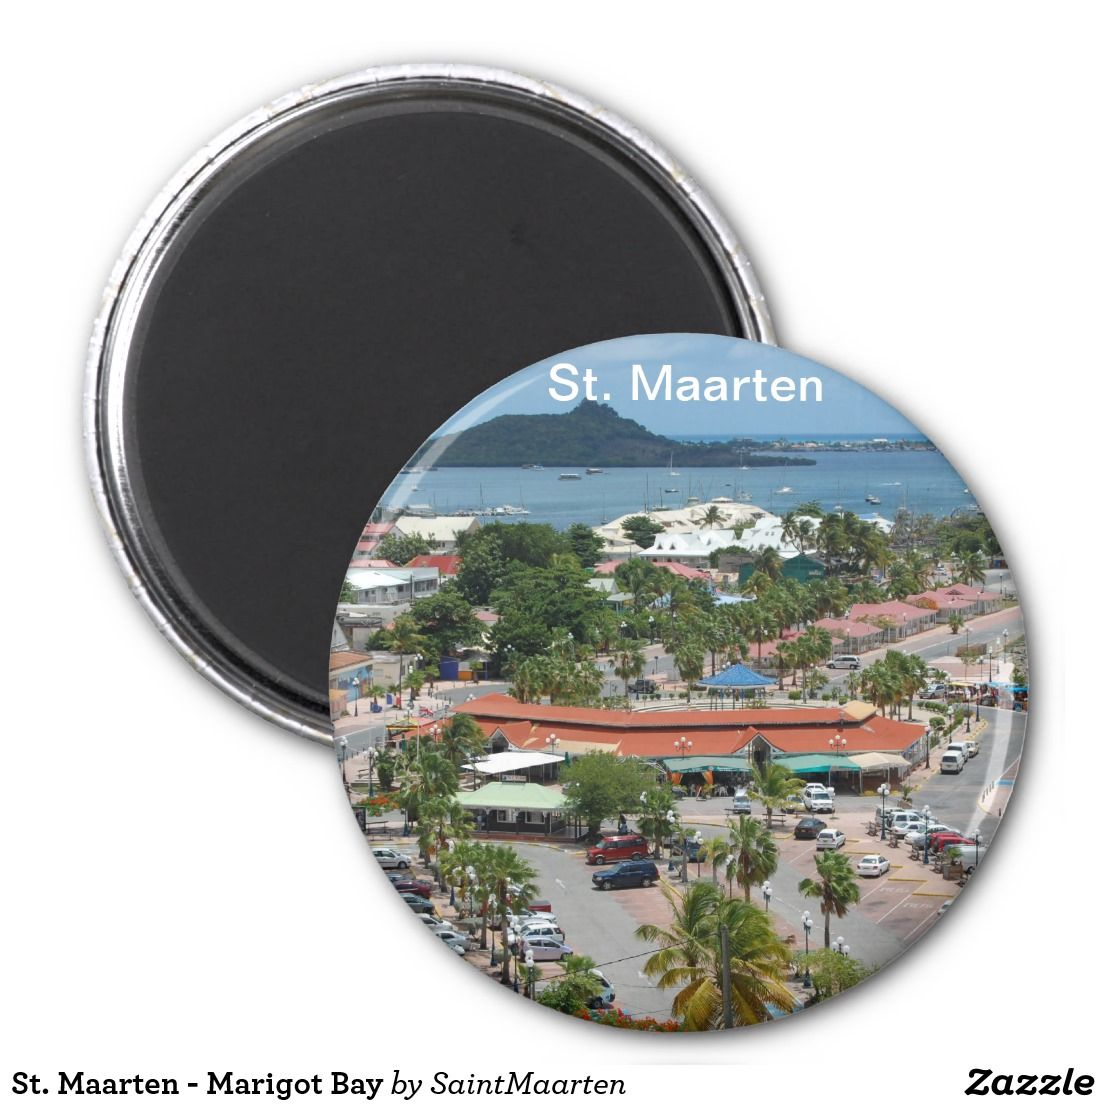 St. Maarten - Marigot Bay Magnet by Khoncepts (sold in Norway) Thank you!